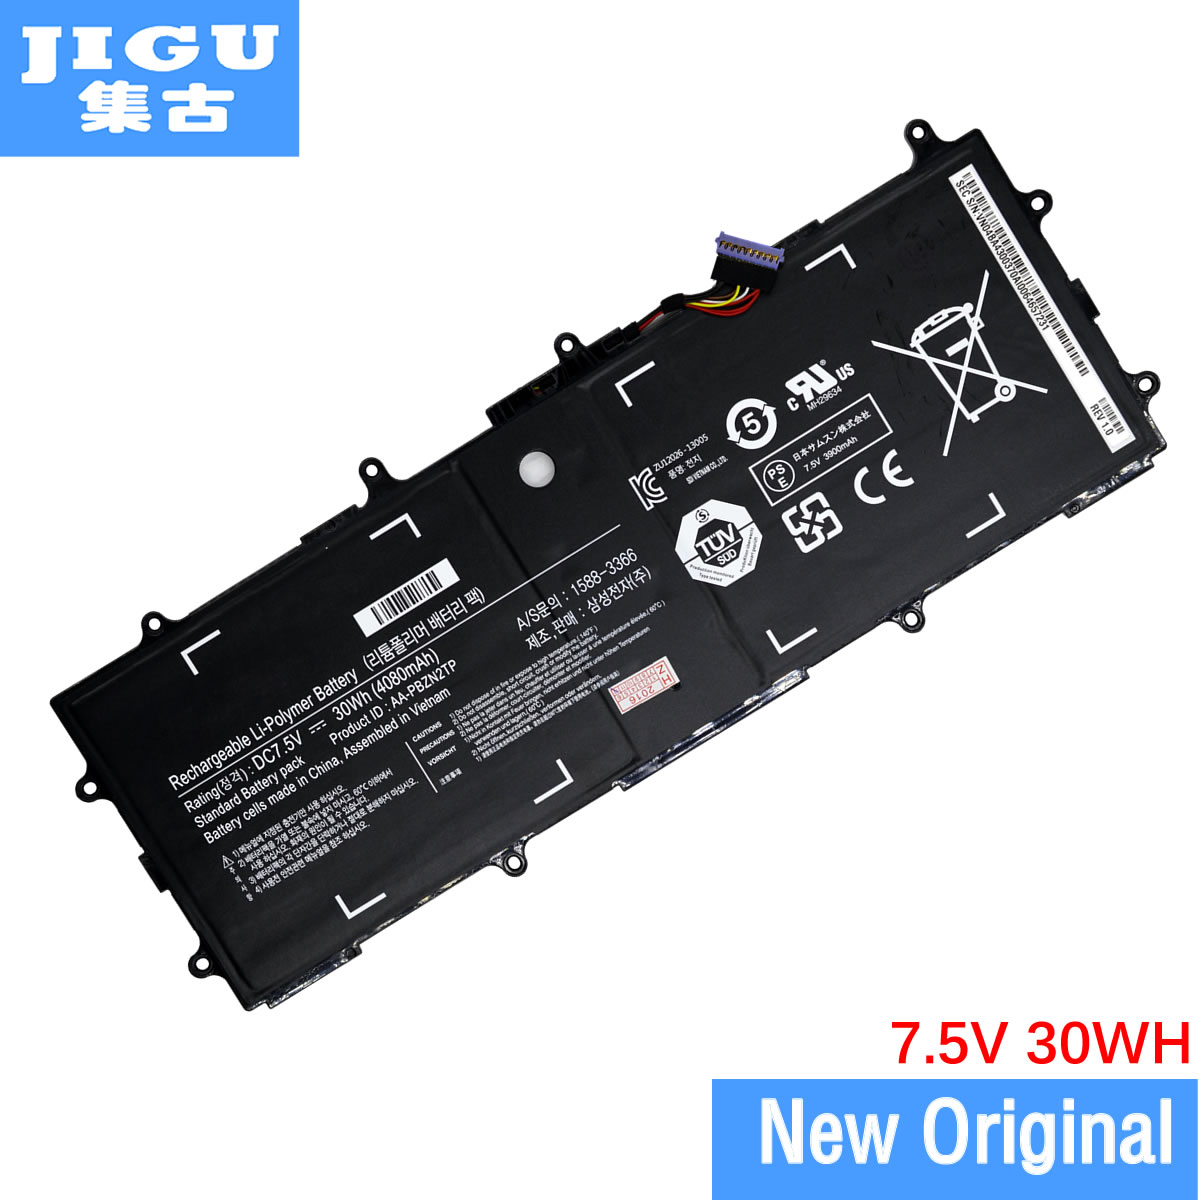 JIGU AA-PB2N2TP AA-PBZN2TP Original Laptop Battery For SAMSUNG 905S3G 910S3G 915S3G XE303C12 for Chromebook 2 3 30WH